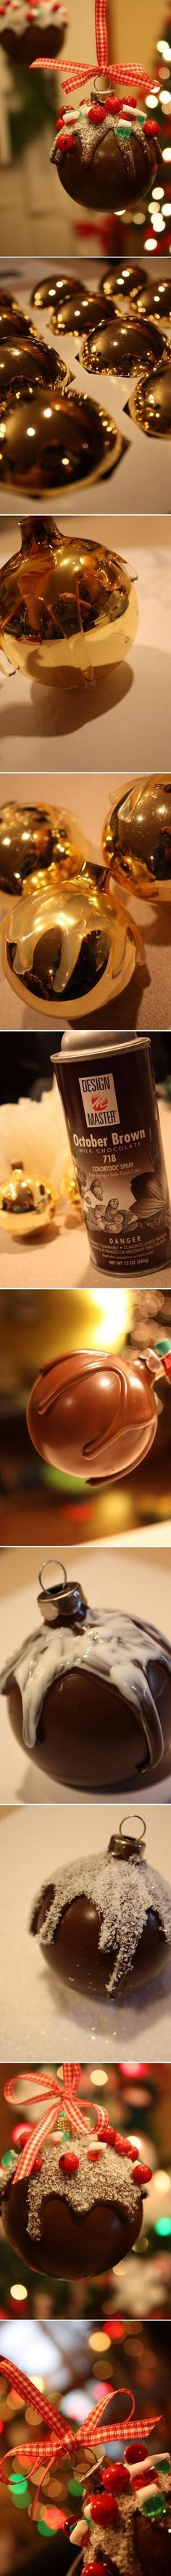 **1**RESTAURANT 2014...Chocolate Candy Ornament